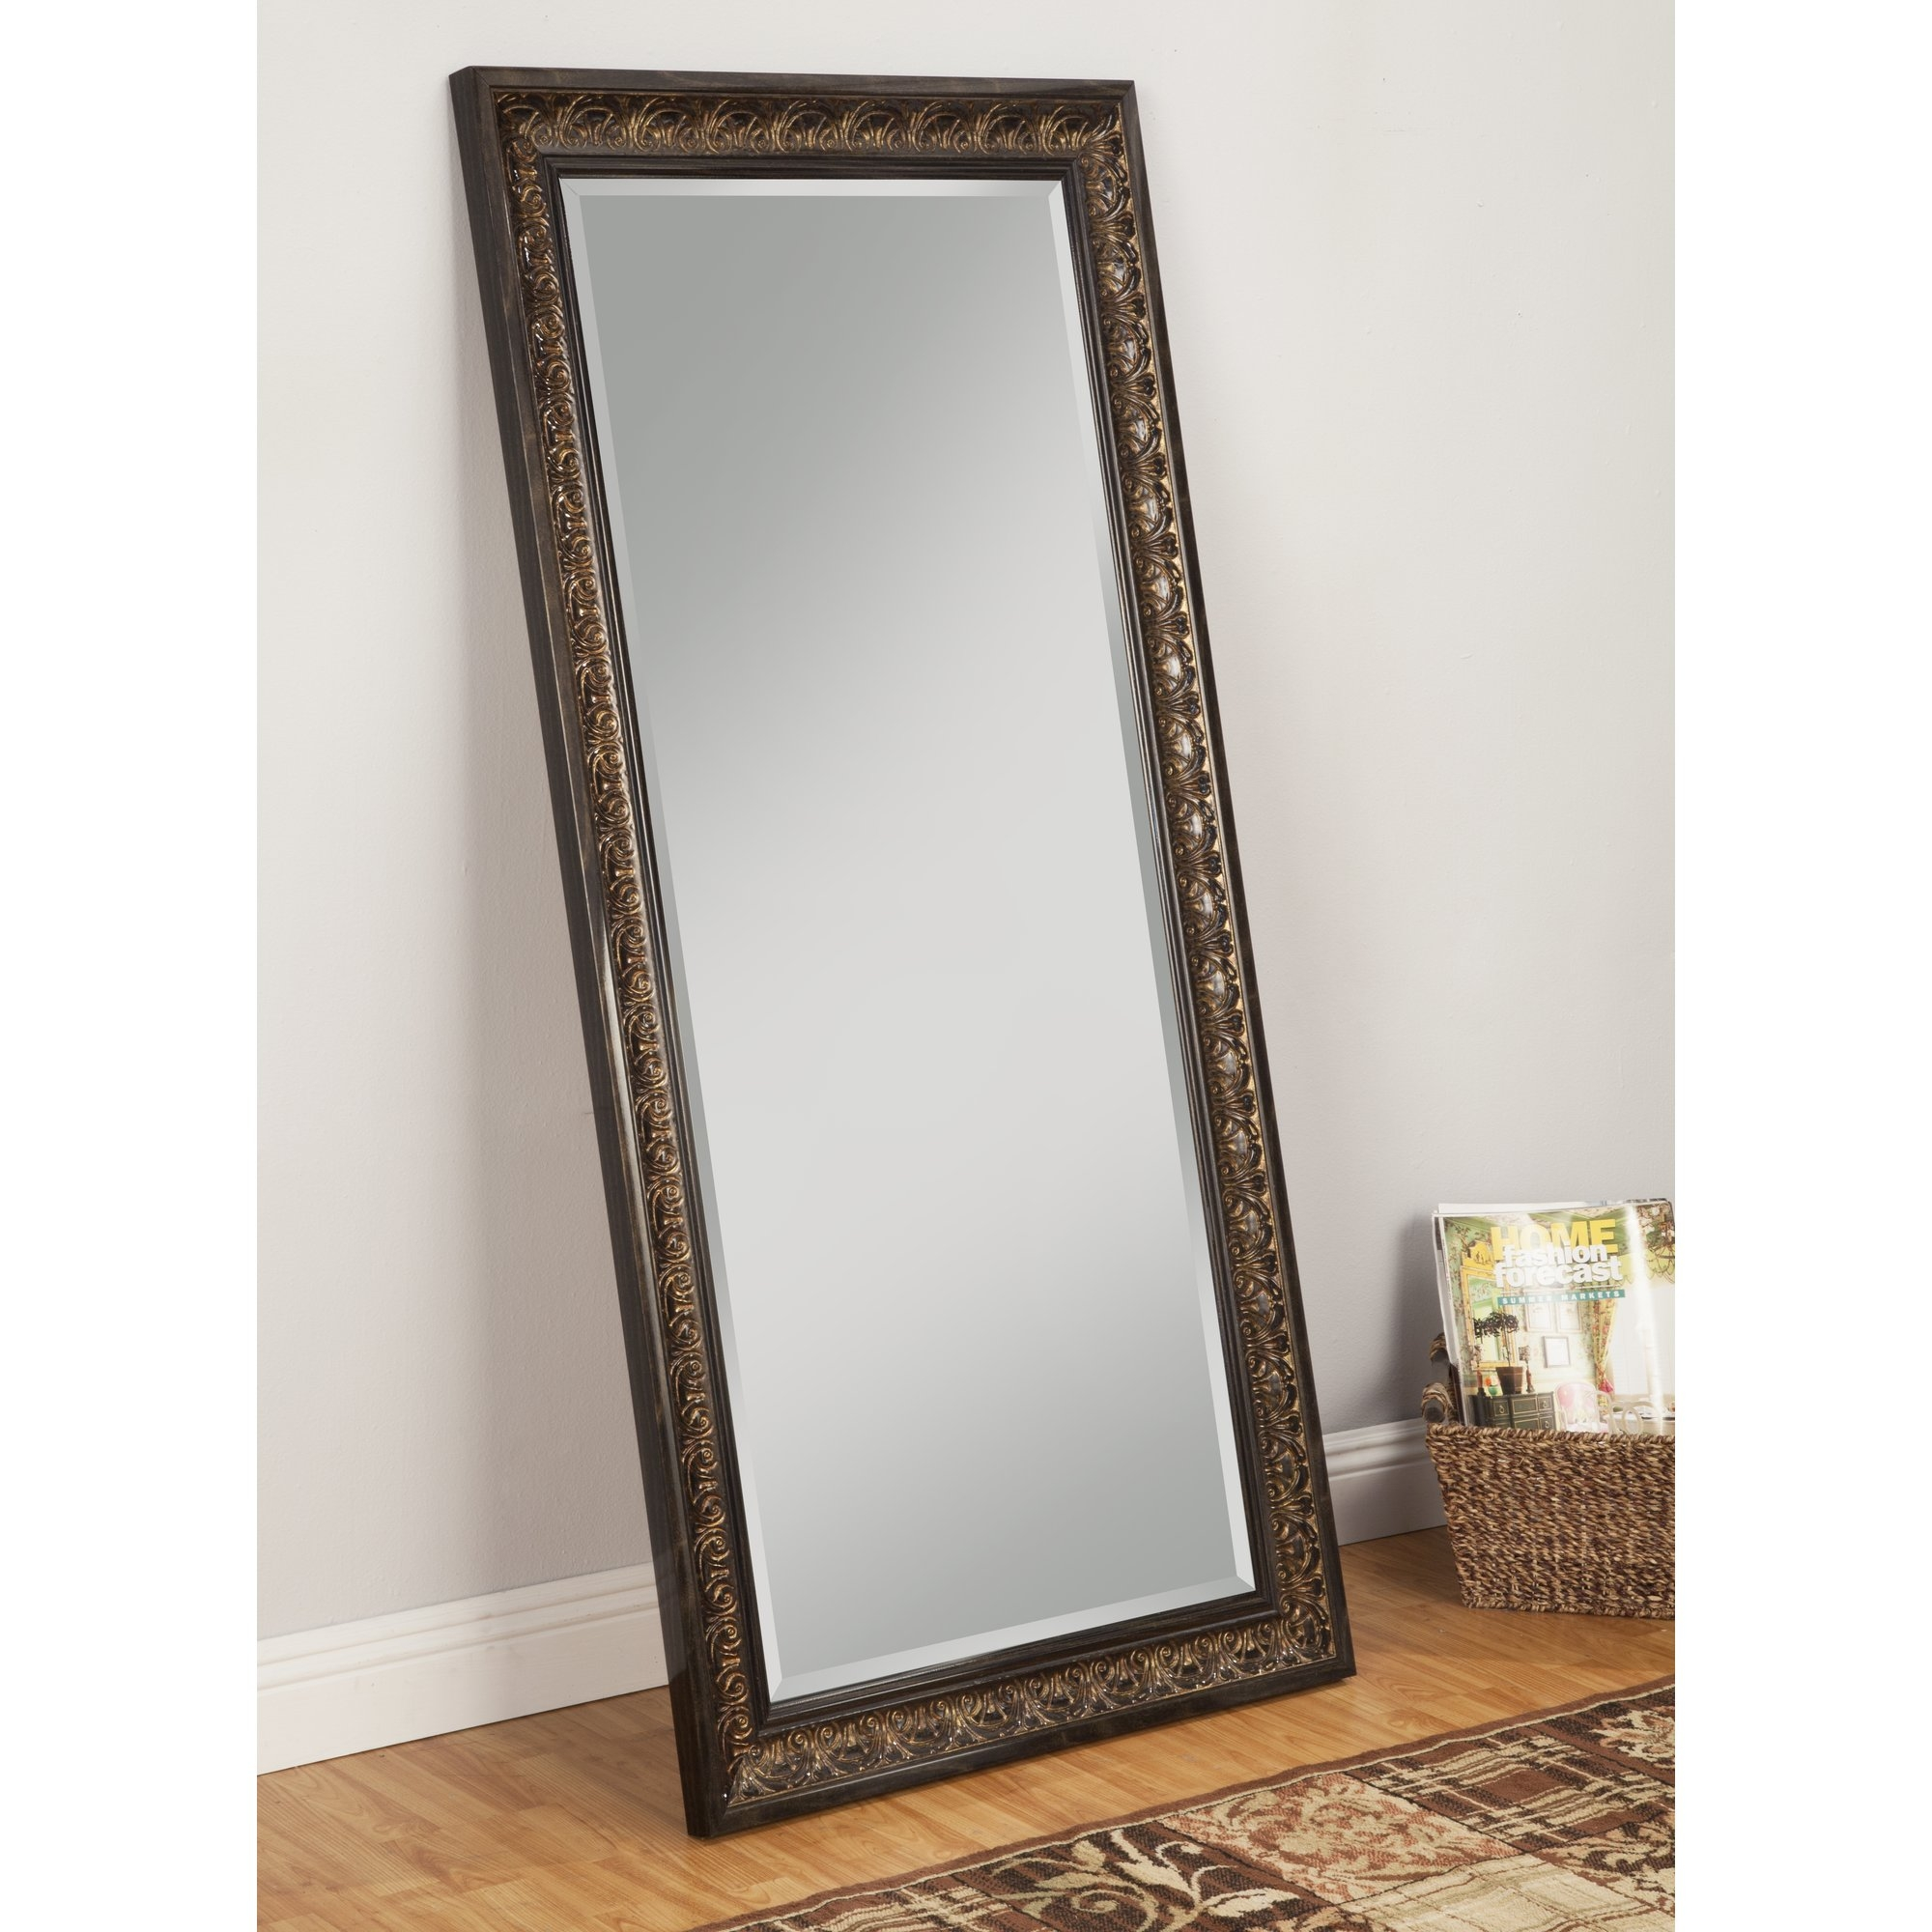 Large Oversized Wall Mirrors Youll Love Wayfair Intended For Large Wall Mirrors (Image 5 of 15)